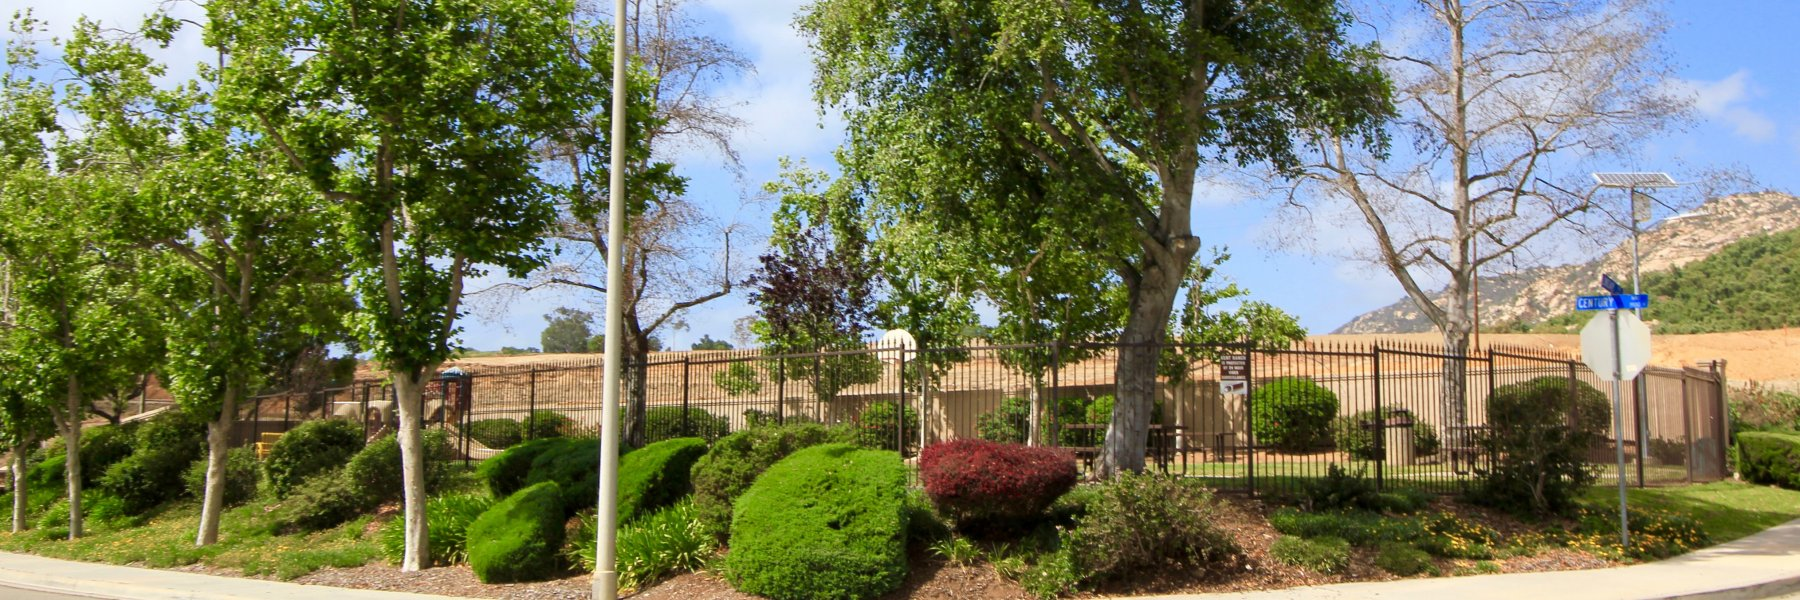 Kent Ranch is a community of homes in Escondido California